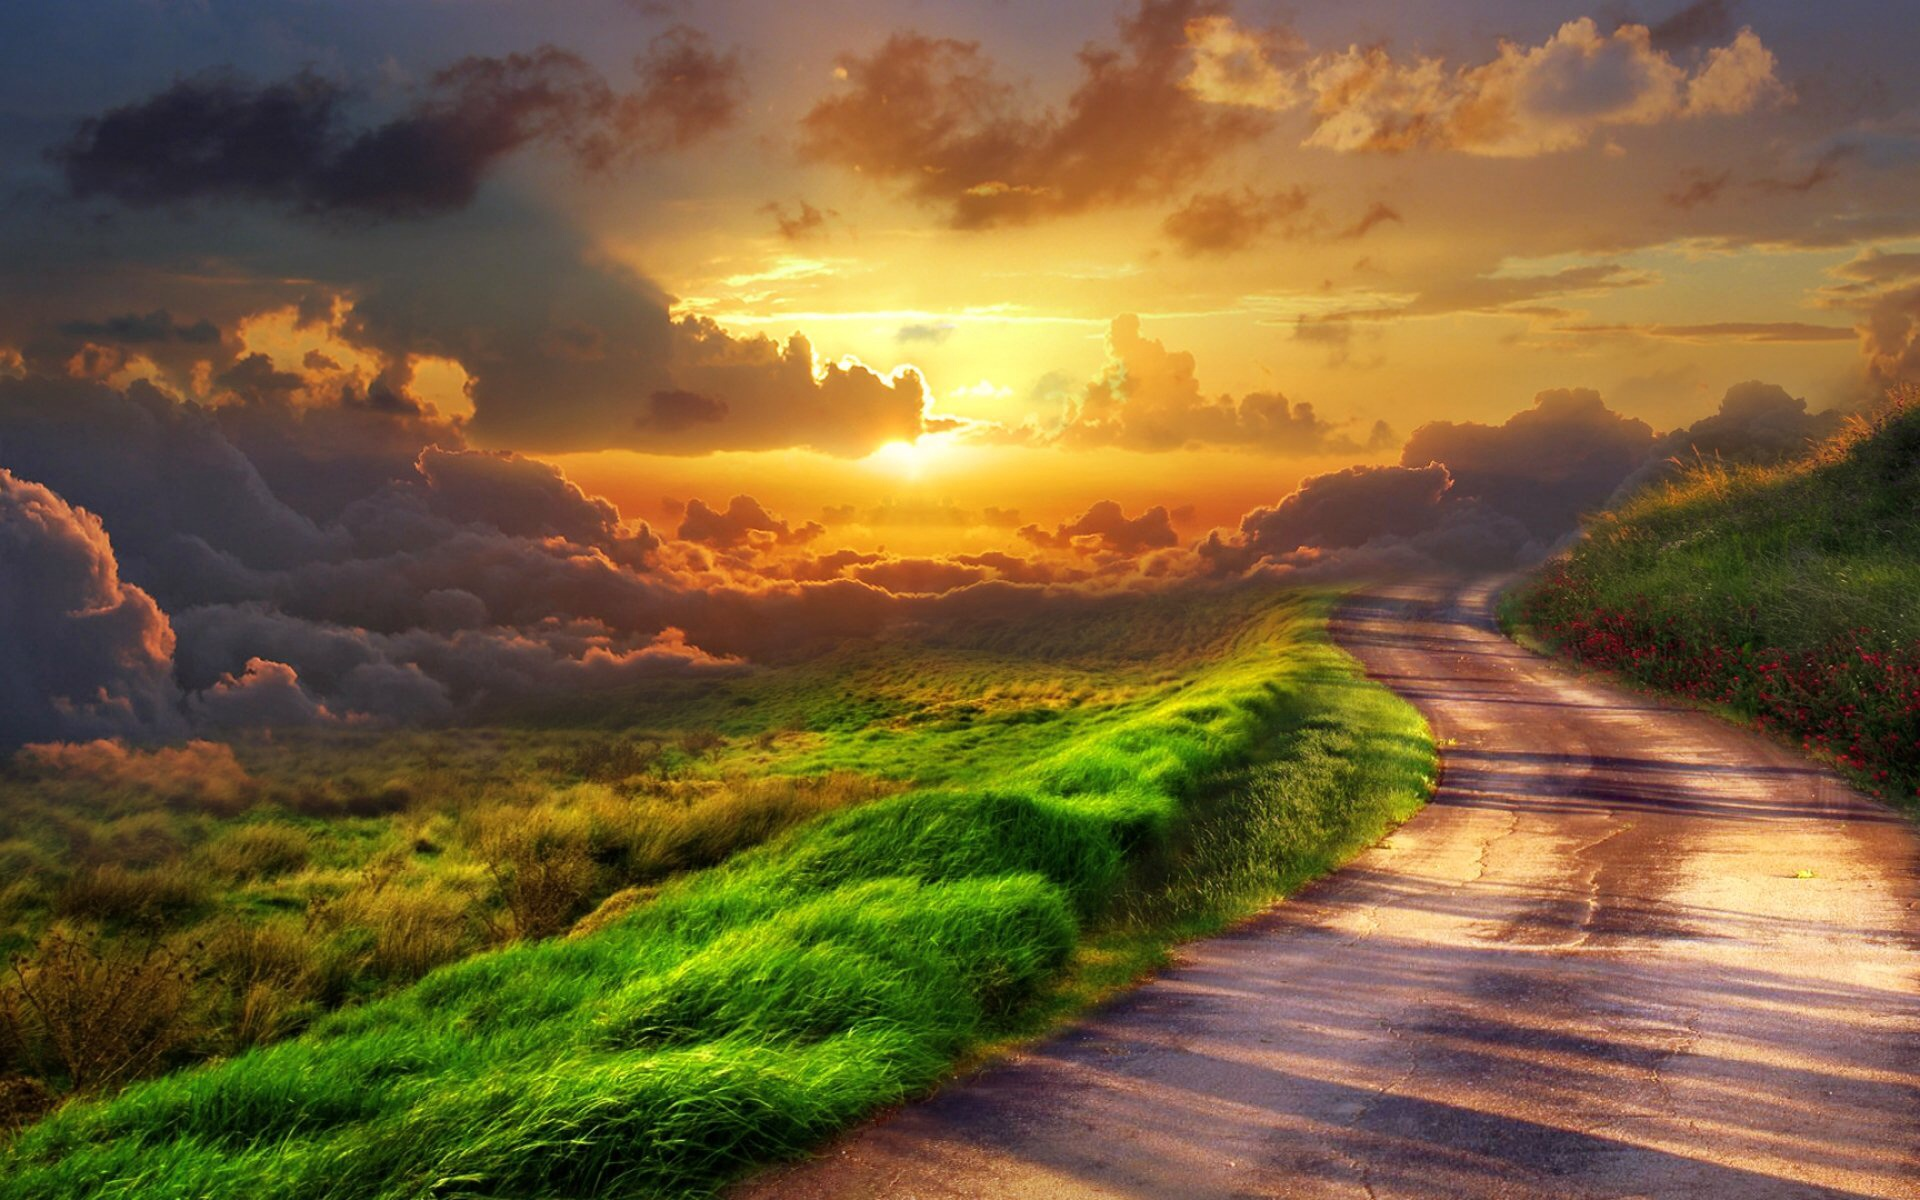 Road-to-heaven-heaven-39496603-1920-1200.jpg